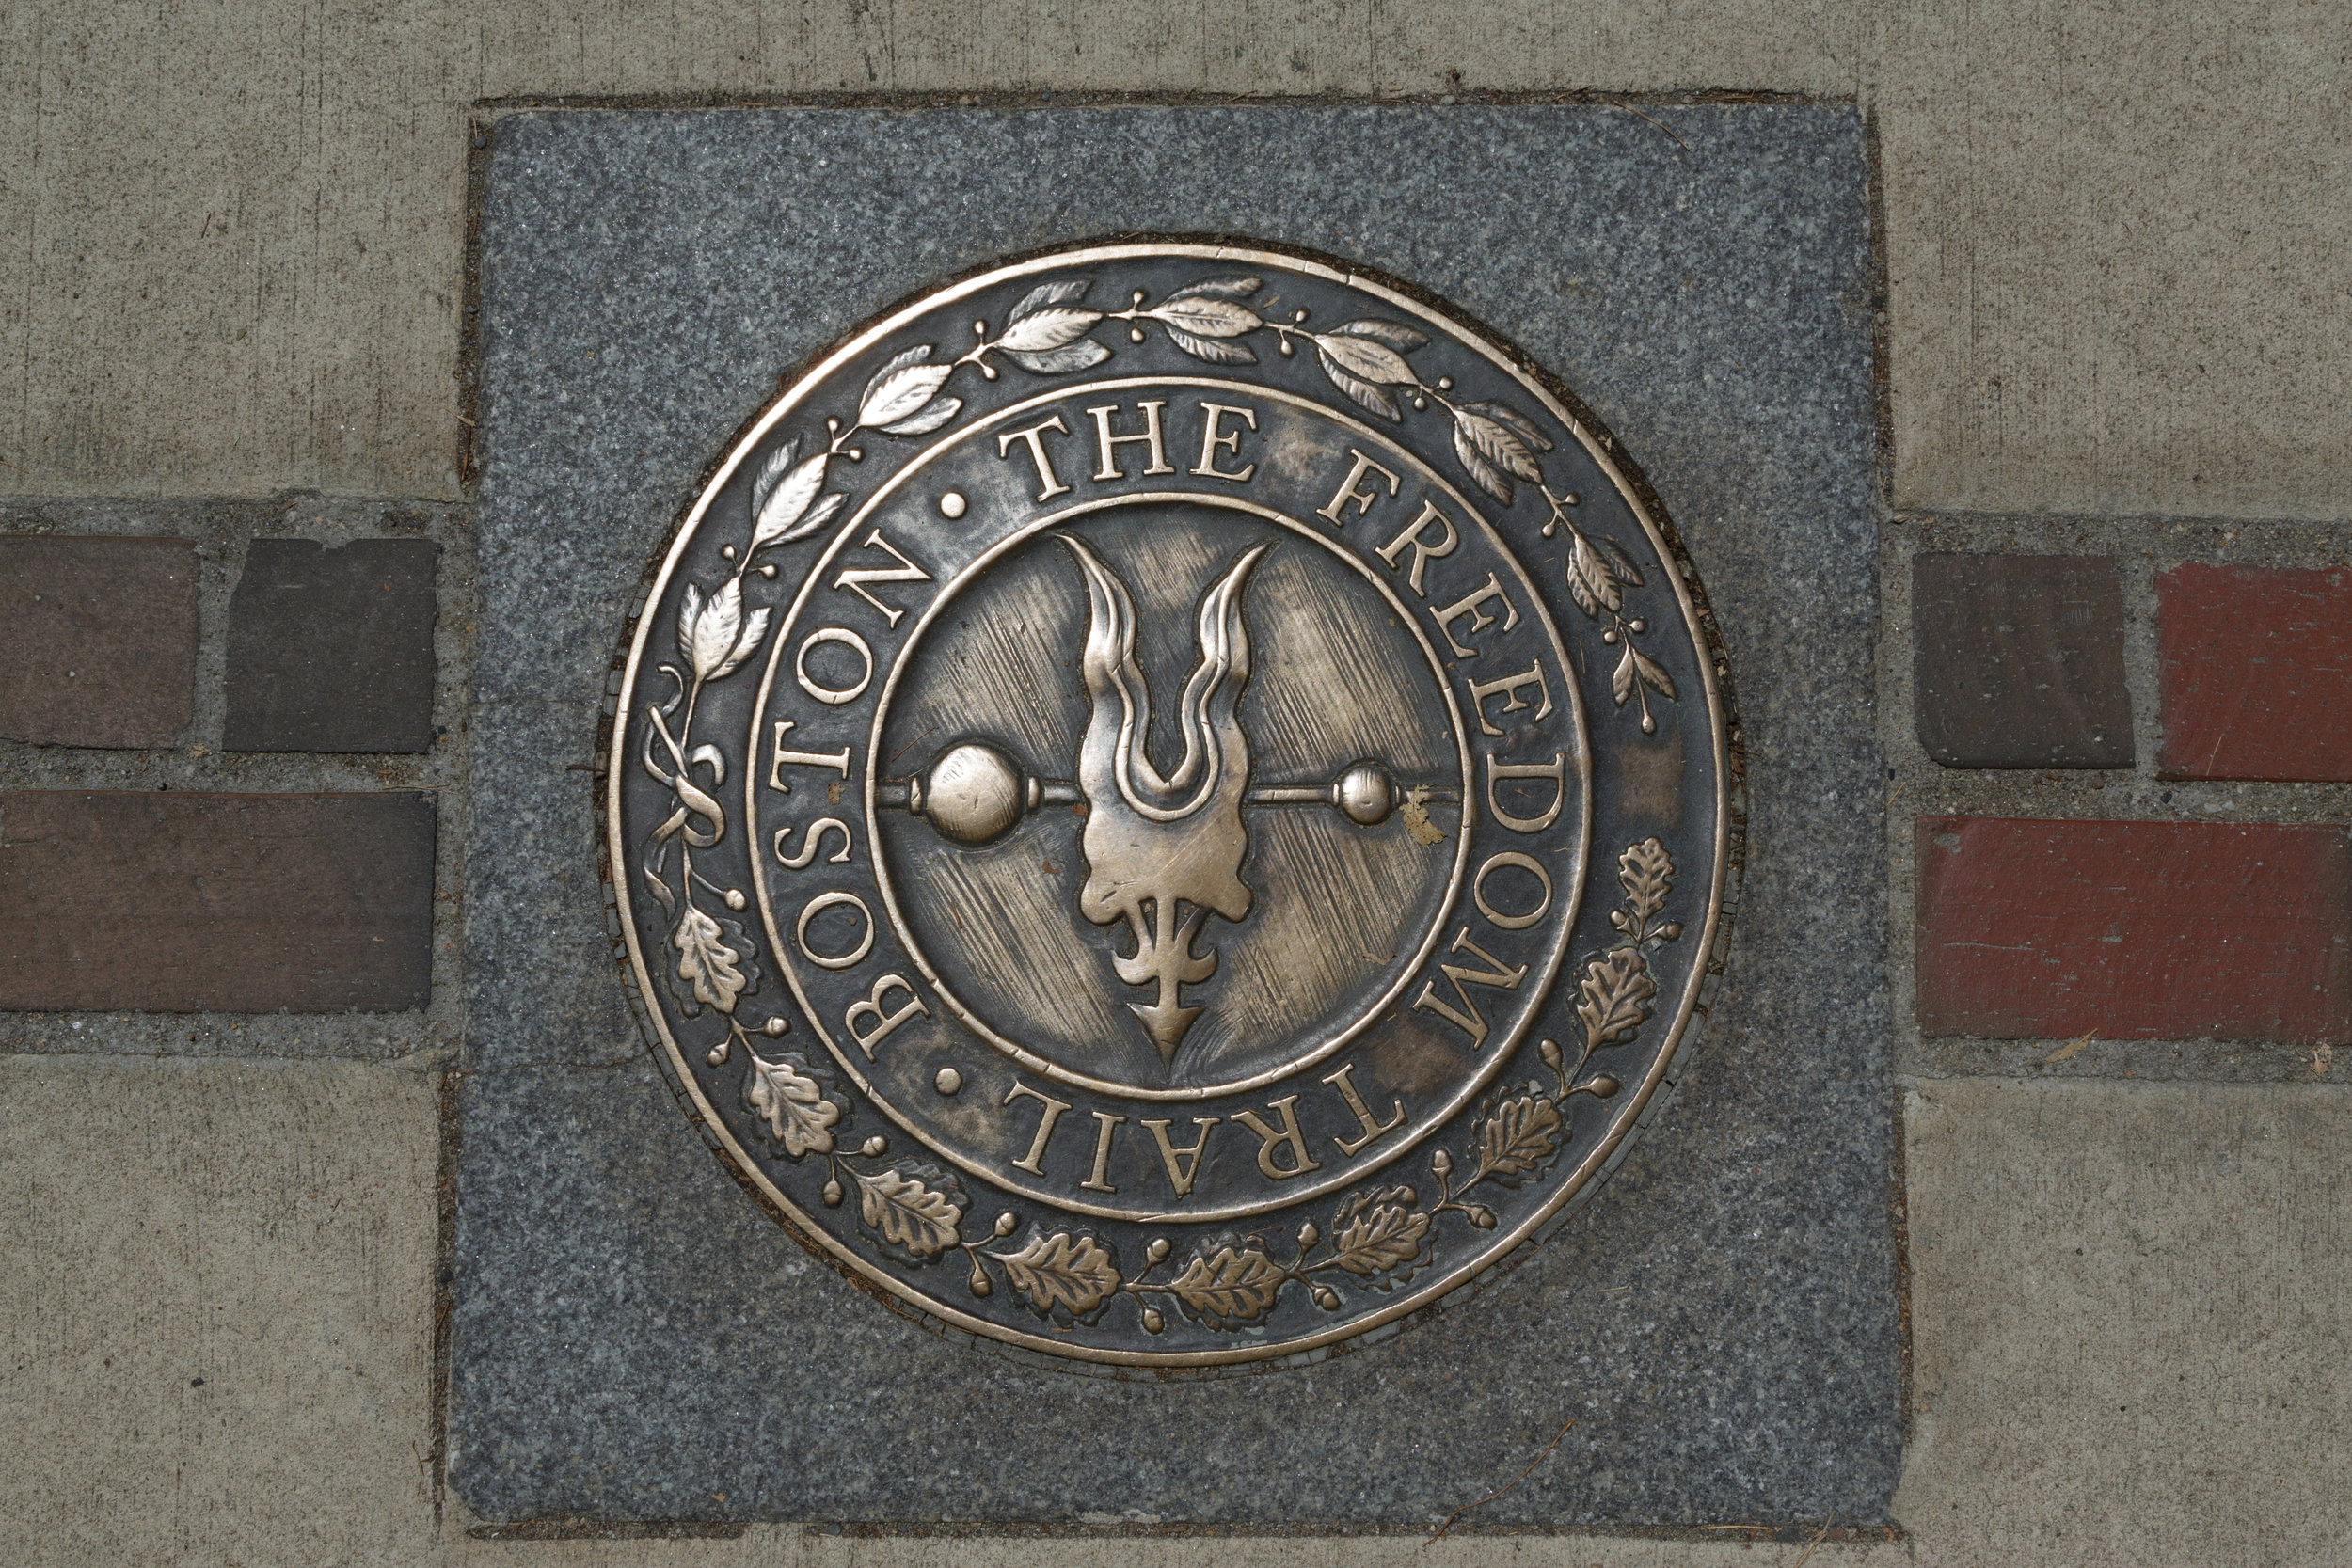 Tour Freedom Trail - Discover the cradle of liberty